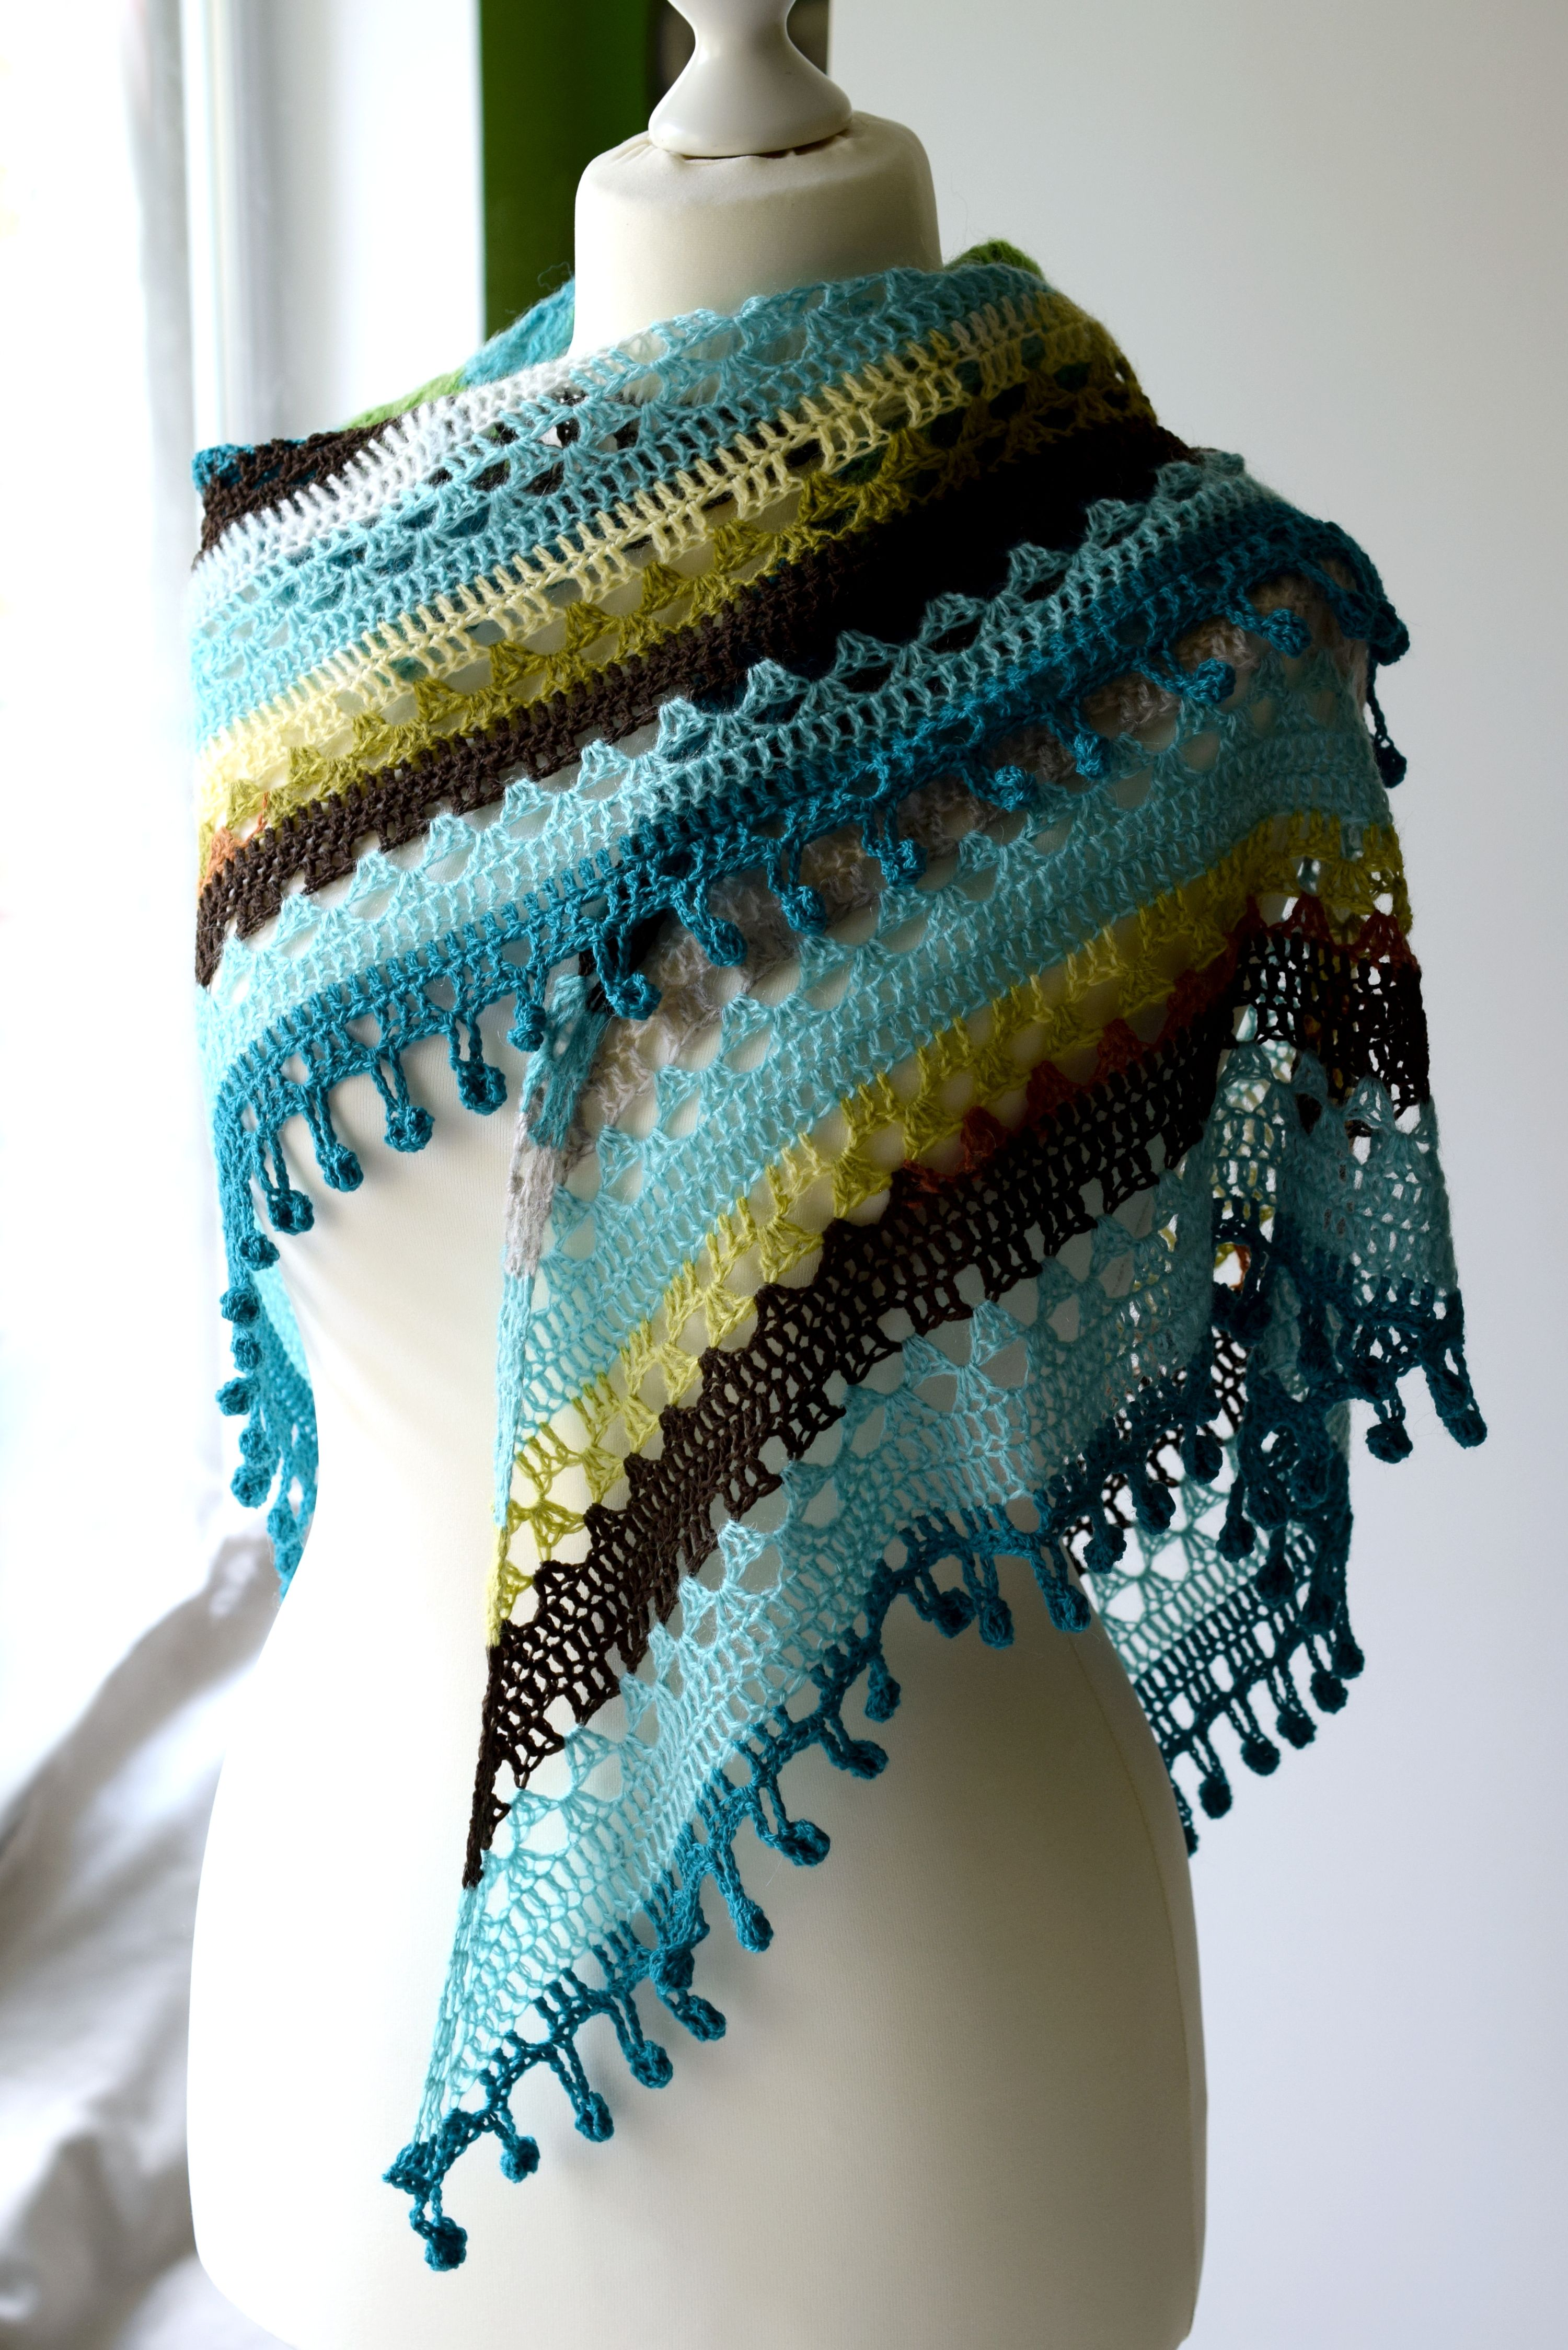 Mohair wrap triangle shawl, soft wool scarf, lace shawl, boho shawl in blue, green and brown stripes, crochet shawl for mothers day